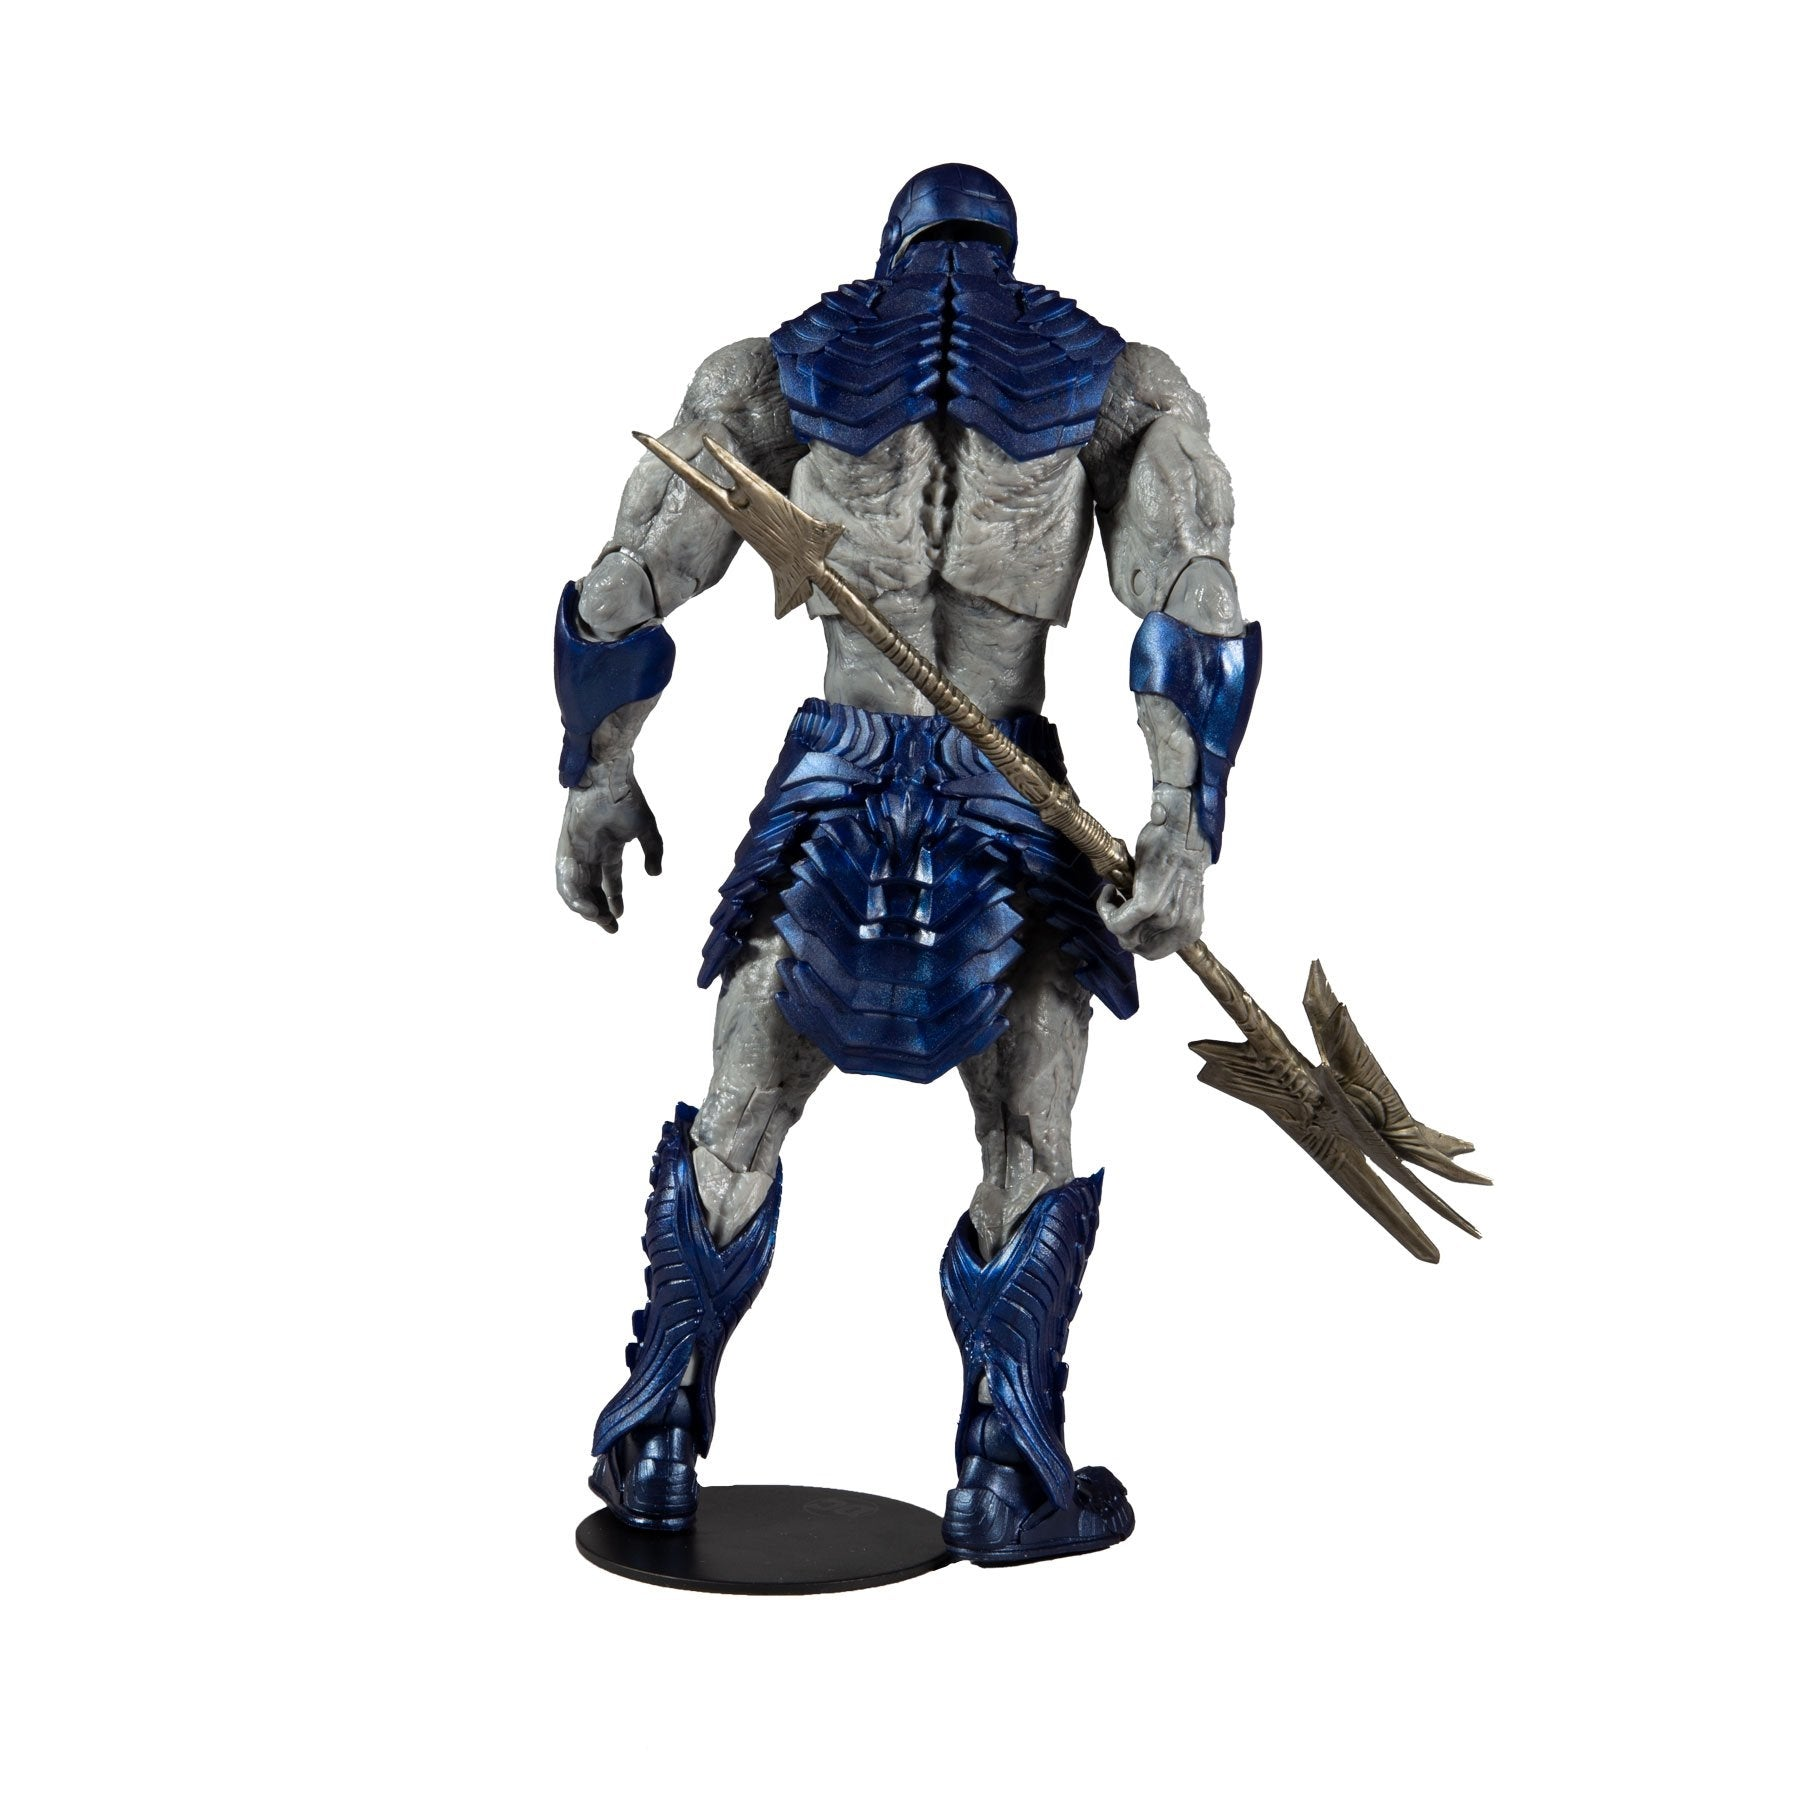 McFarlane Toys - DC Multiverse - Zack Snyder's Justice League - Darkseid Action Figure